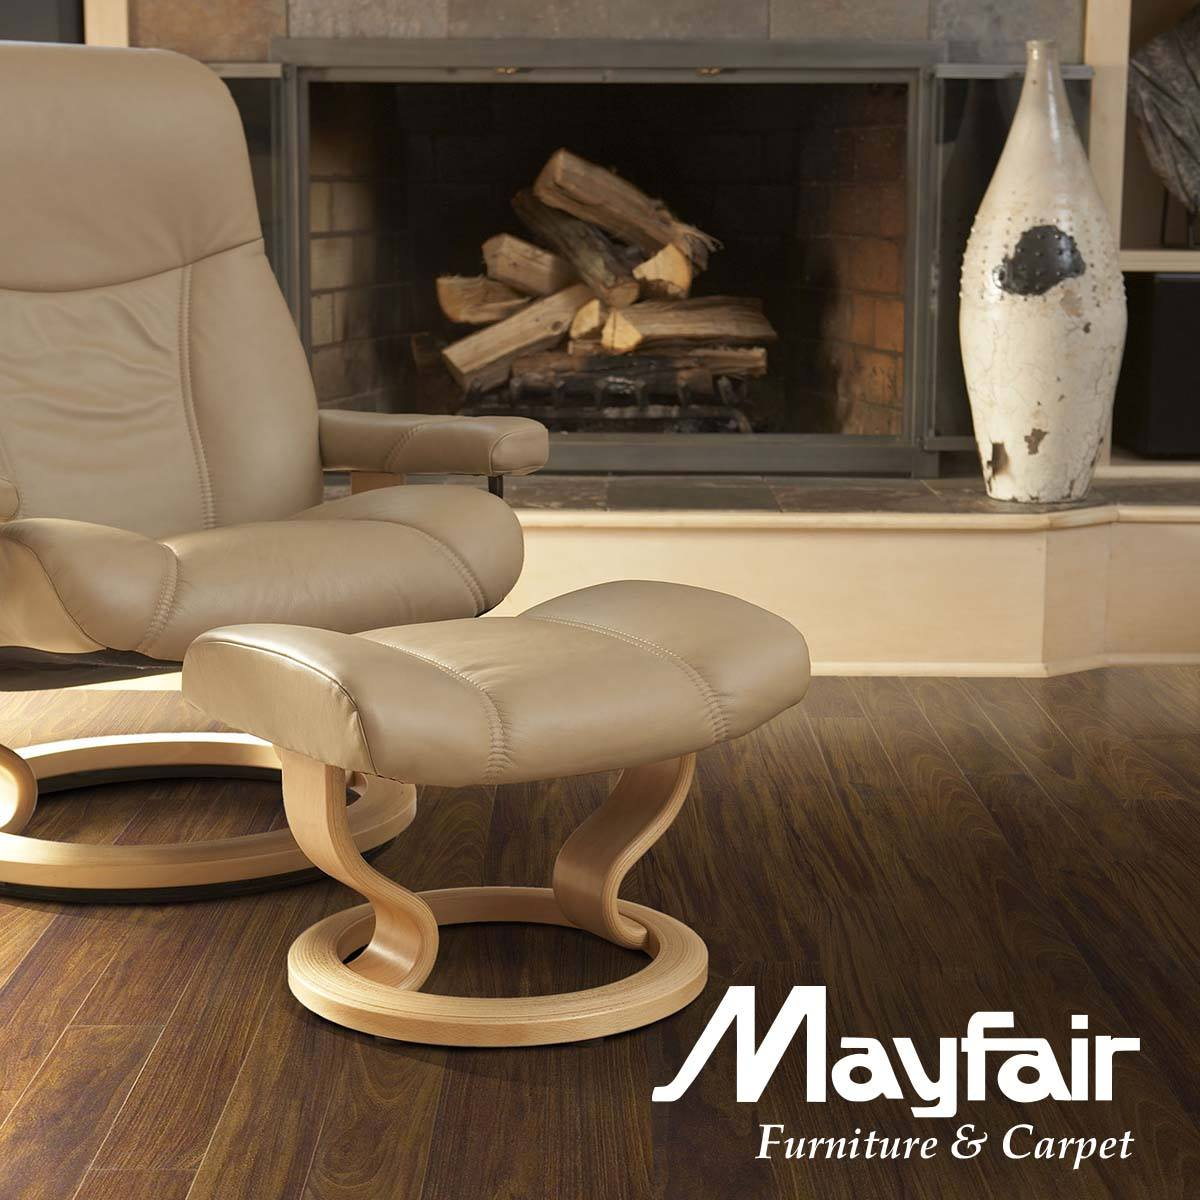 Ordinaire ... Flooring Choices And Furniture Too! We Invite You To Take A Look At  Http://www.mayfairfurnitureandcarpet.com Today! #homedecor #carpet  #flooringchoices ...